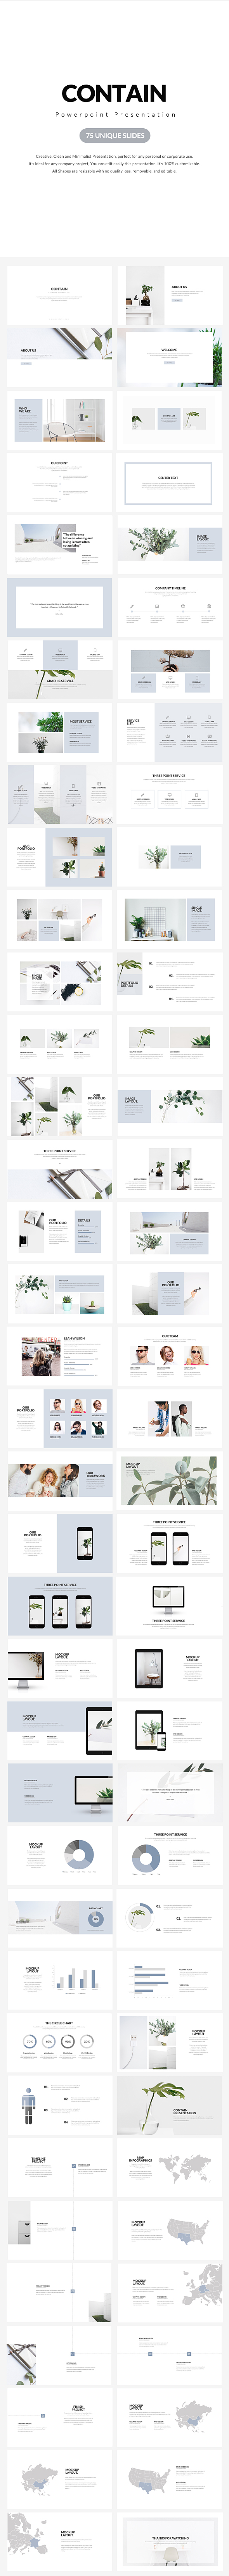 GraphicRiver Contain Powerpoint Presentation 20250582